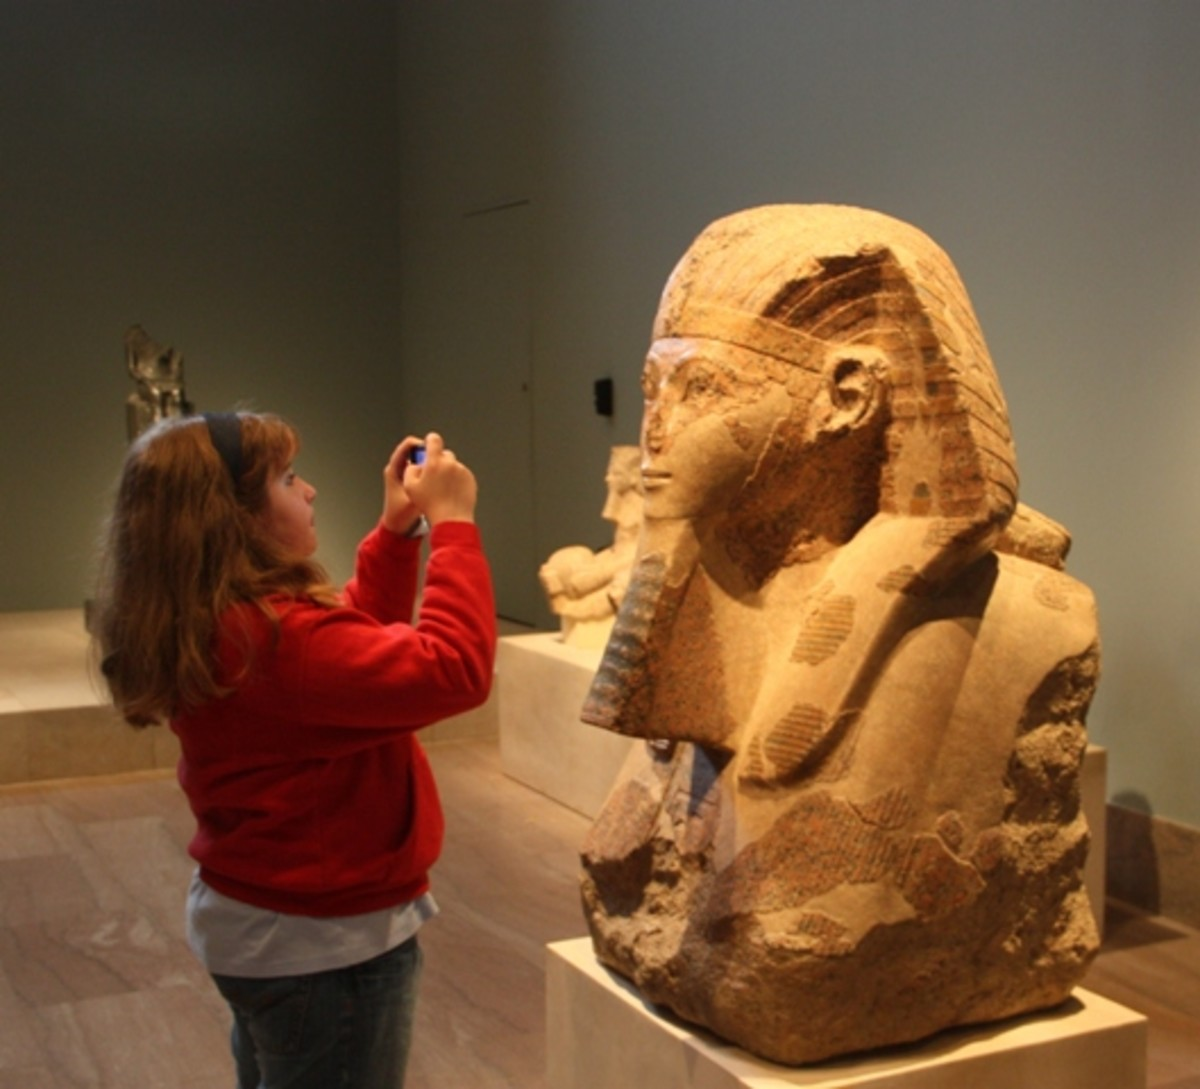 Using her Ipod to capture images of Ancient Egyptian sculpture